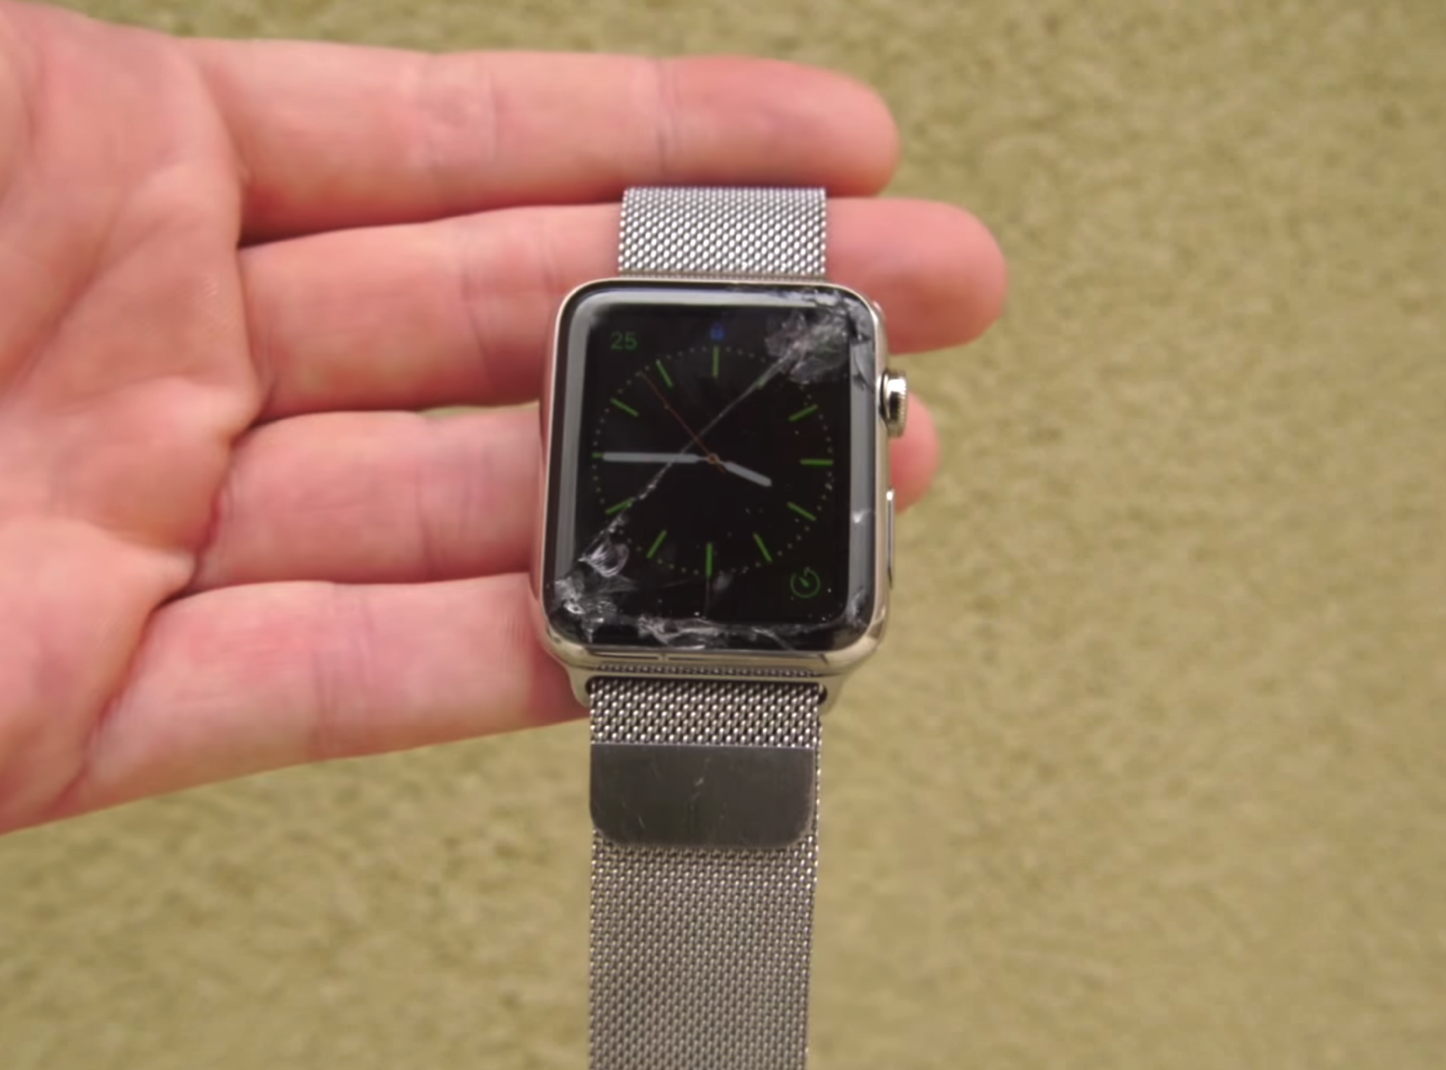 Apple Watch Display Crack 1